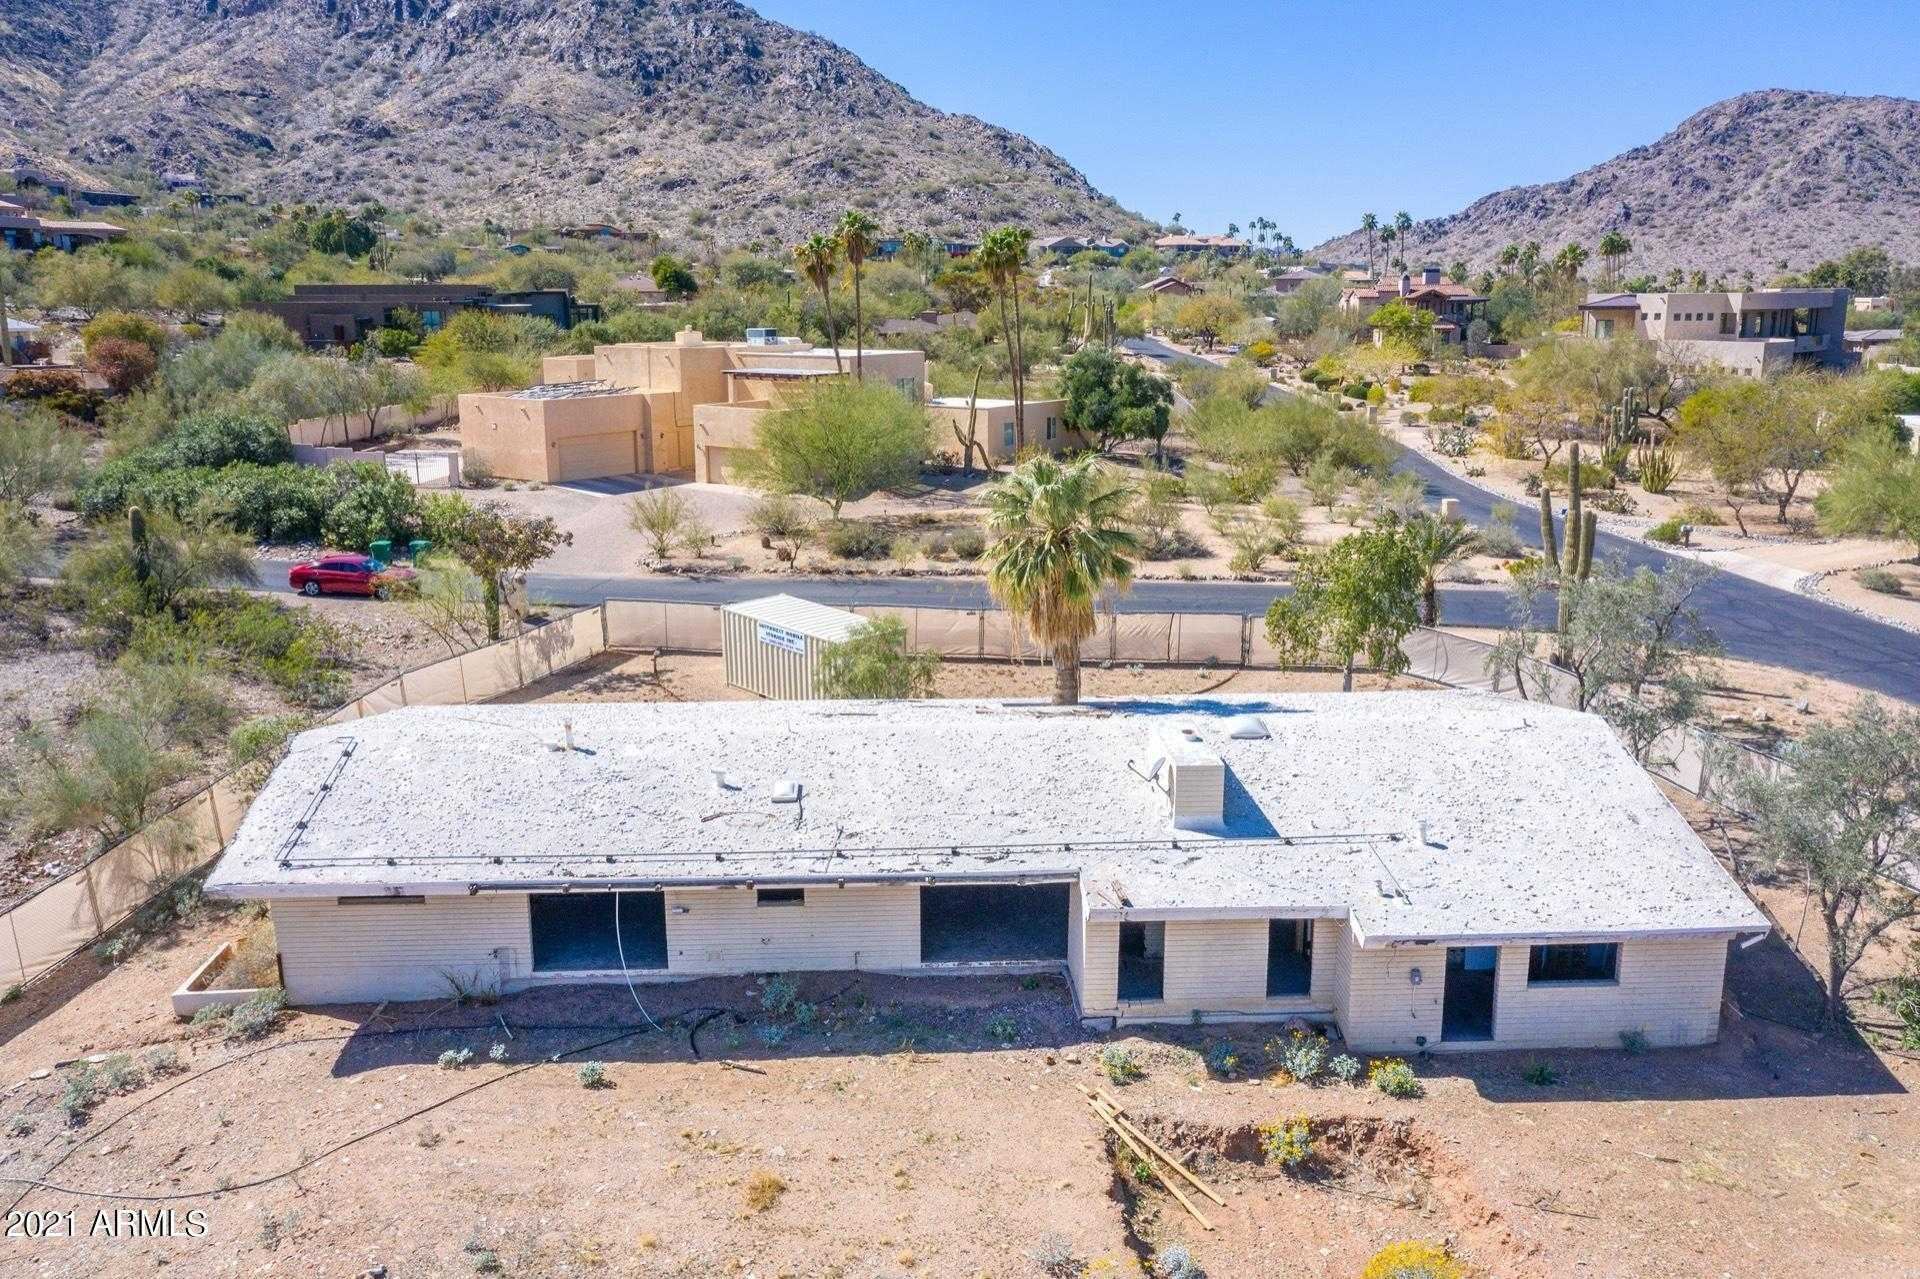 $1,300,000 - 5Br/3Ba - Home for Sale in Sunset Hills Lot 21-37 & Tr A, B, Paradise Valley